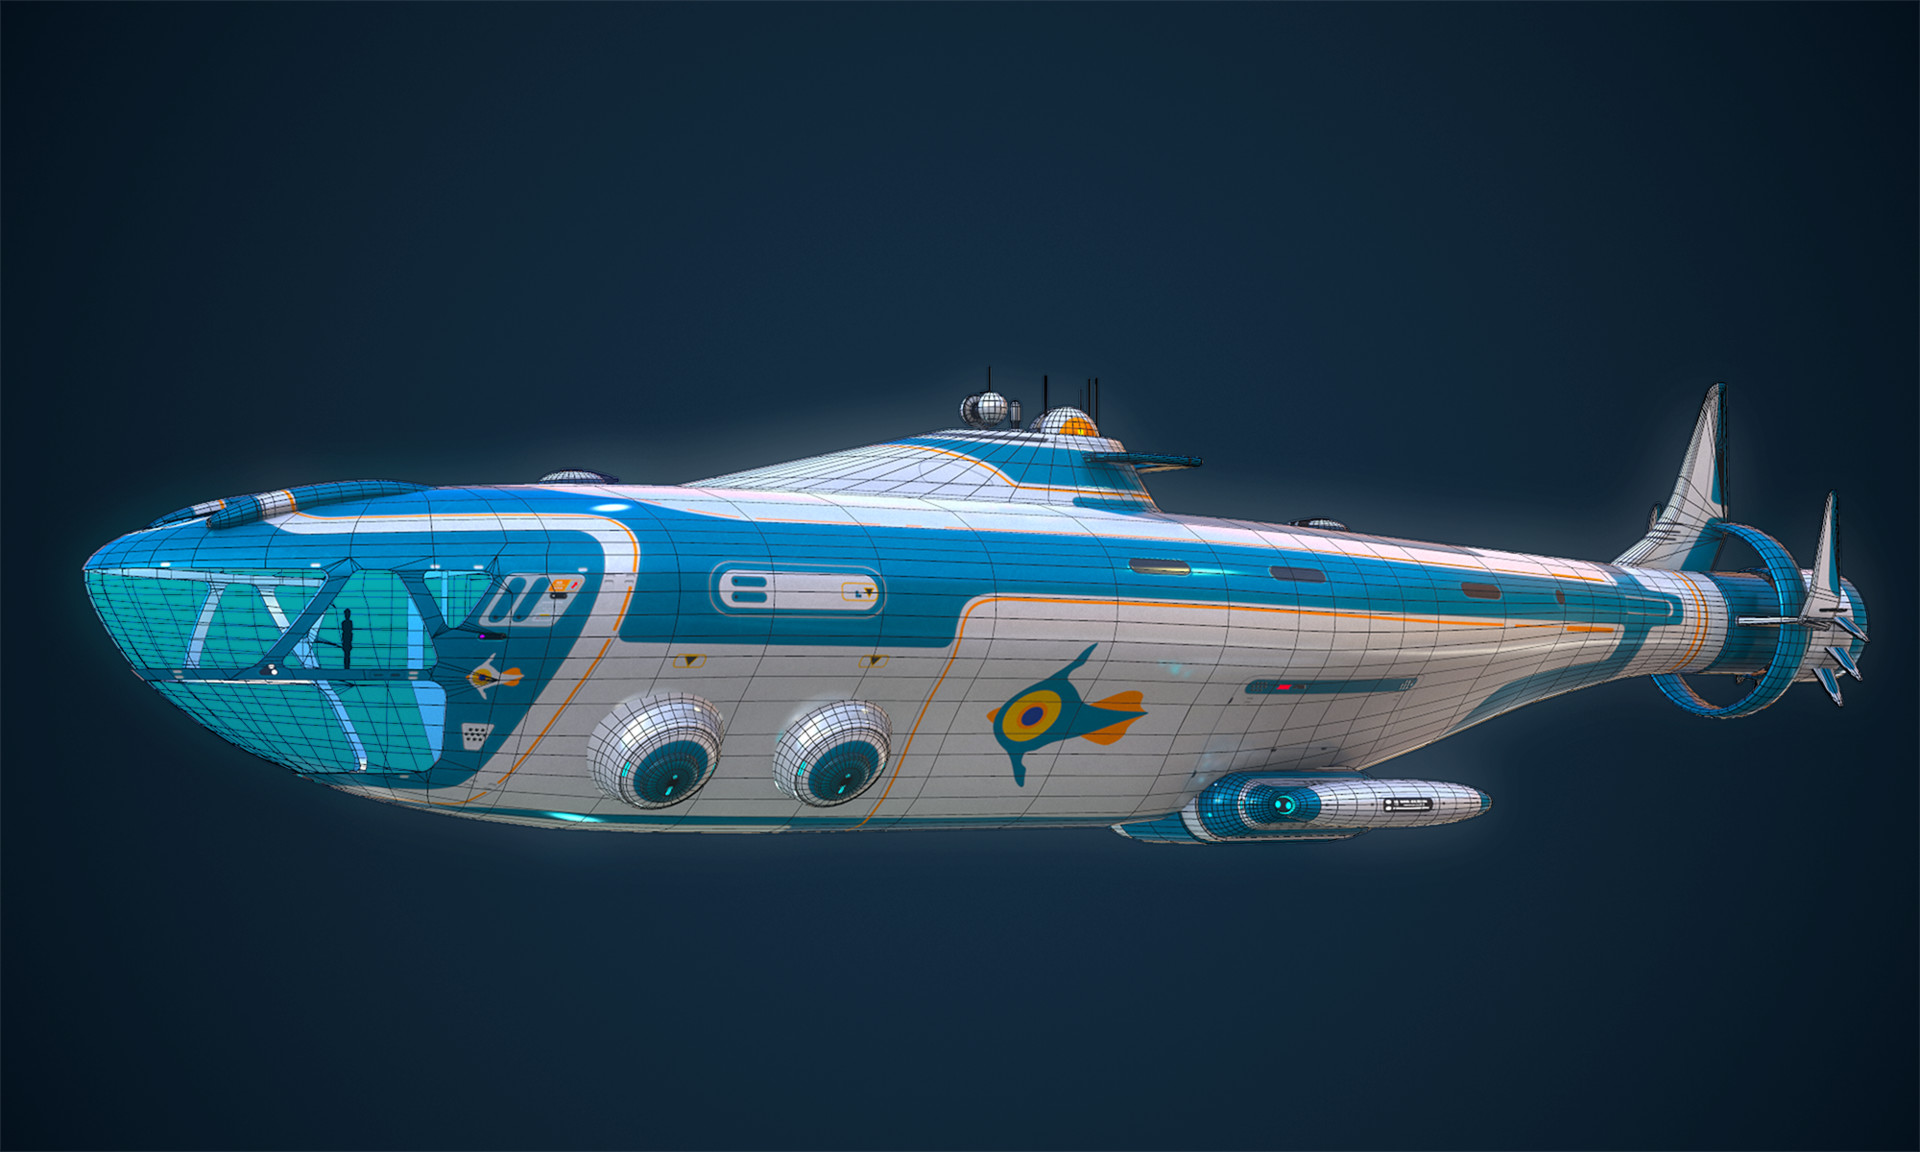 tanguy oliveras - the atlas - subnautica fanmade model